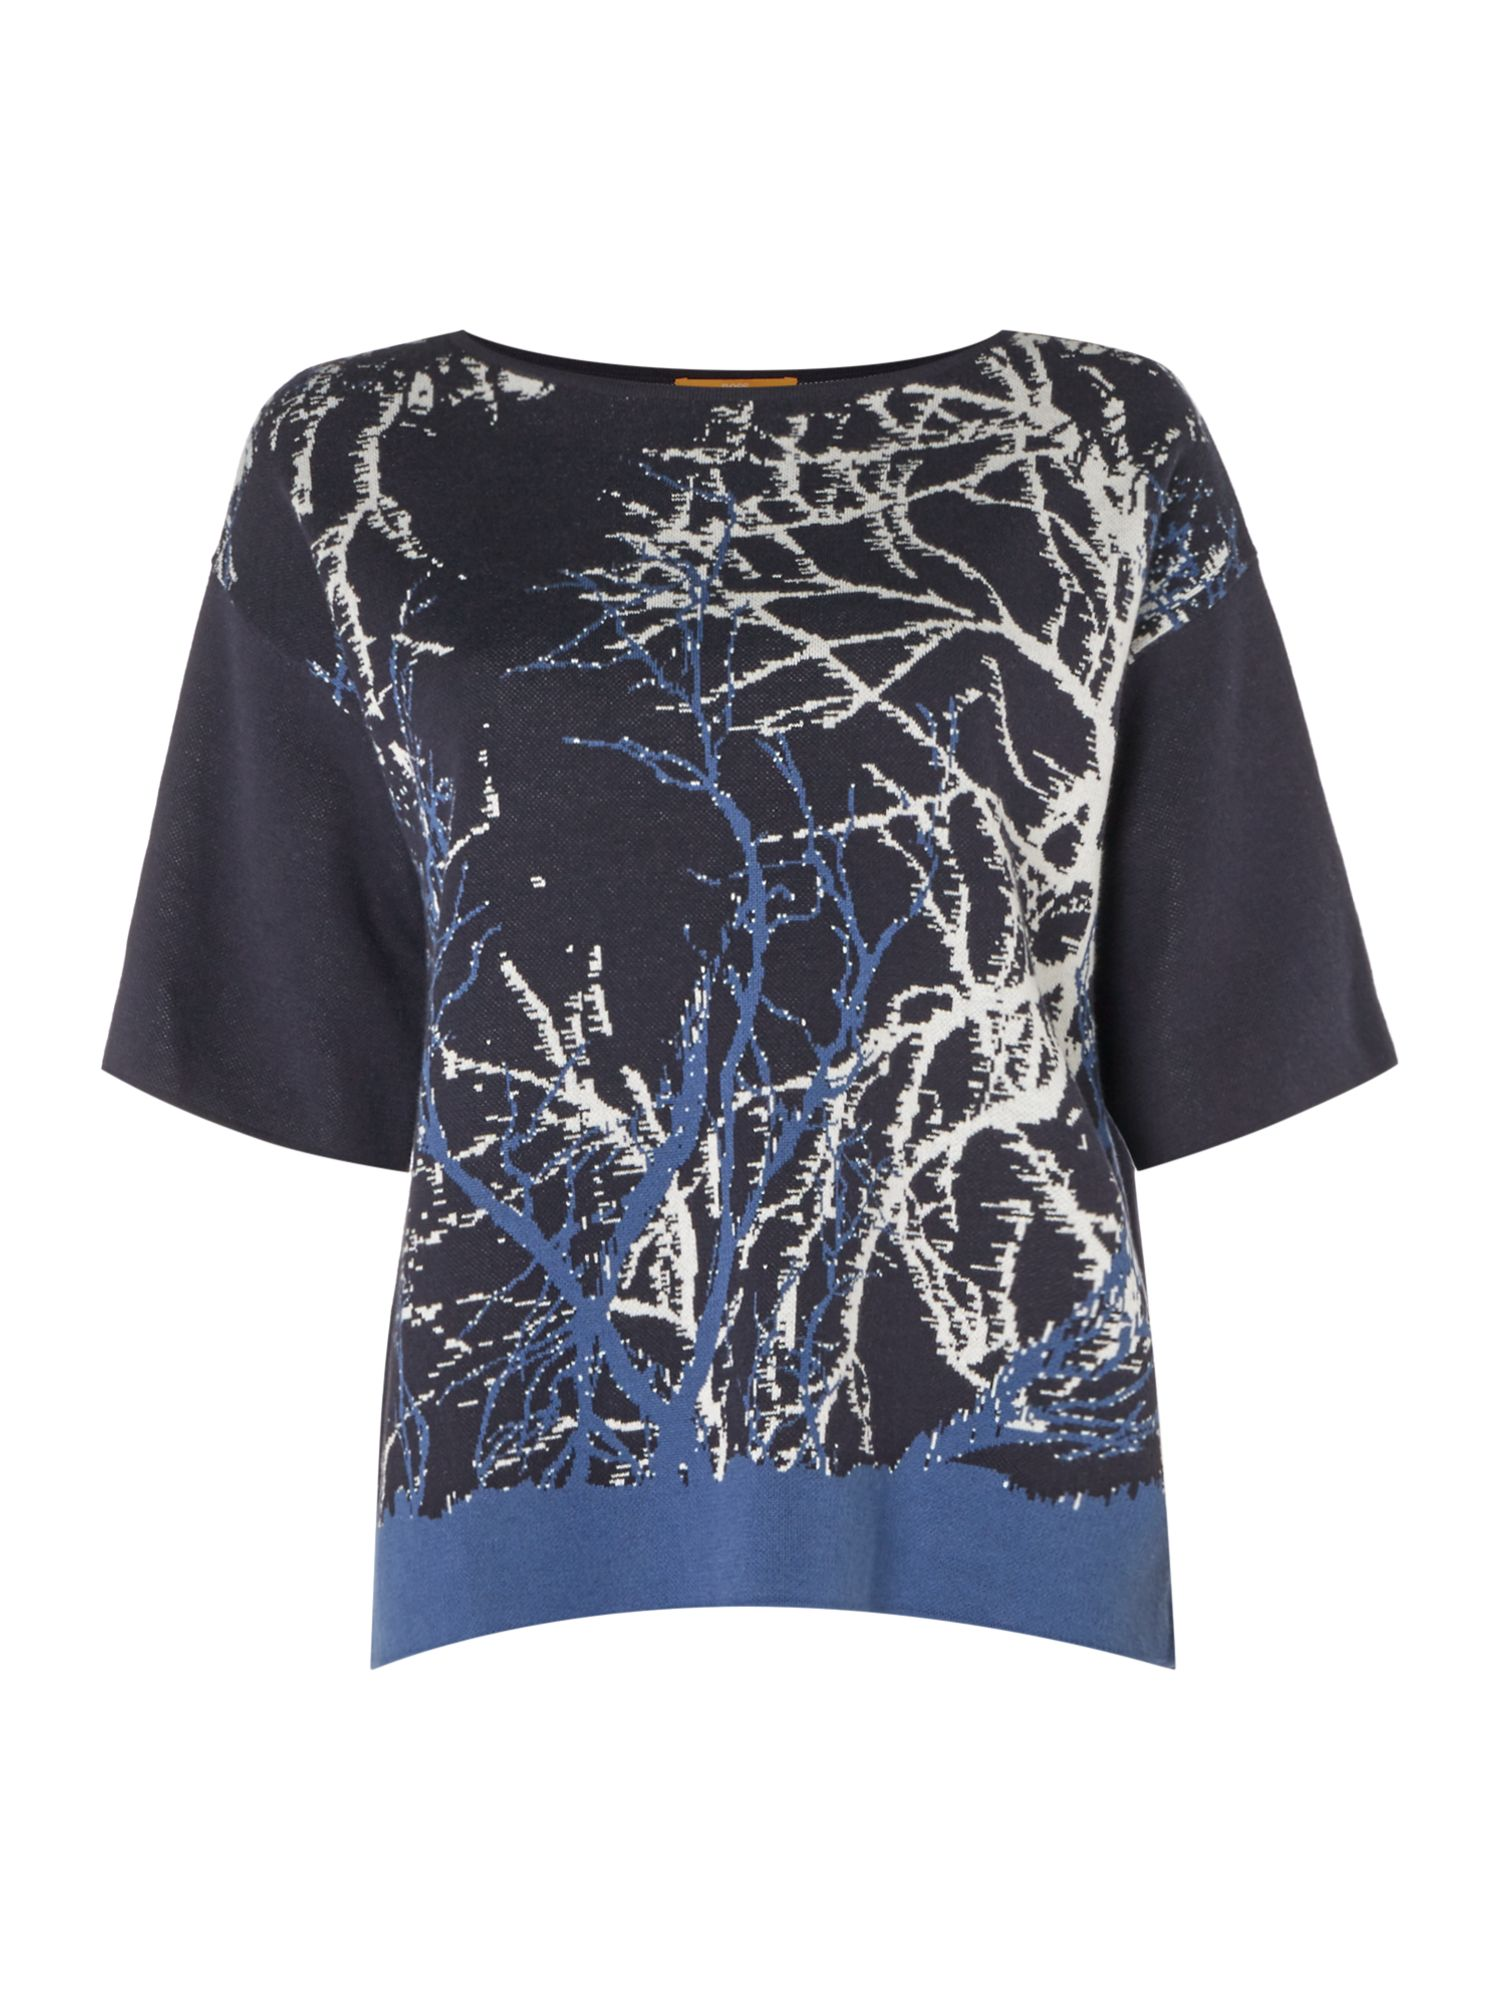 Hugo Boss Izana Jersey Print Top in Dark Blue, Dark Blue